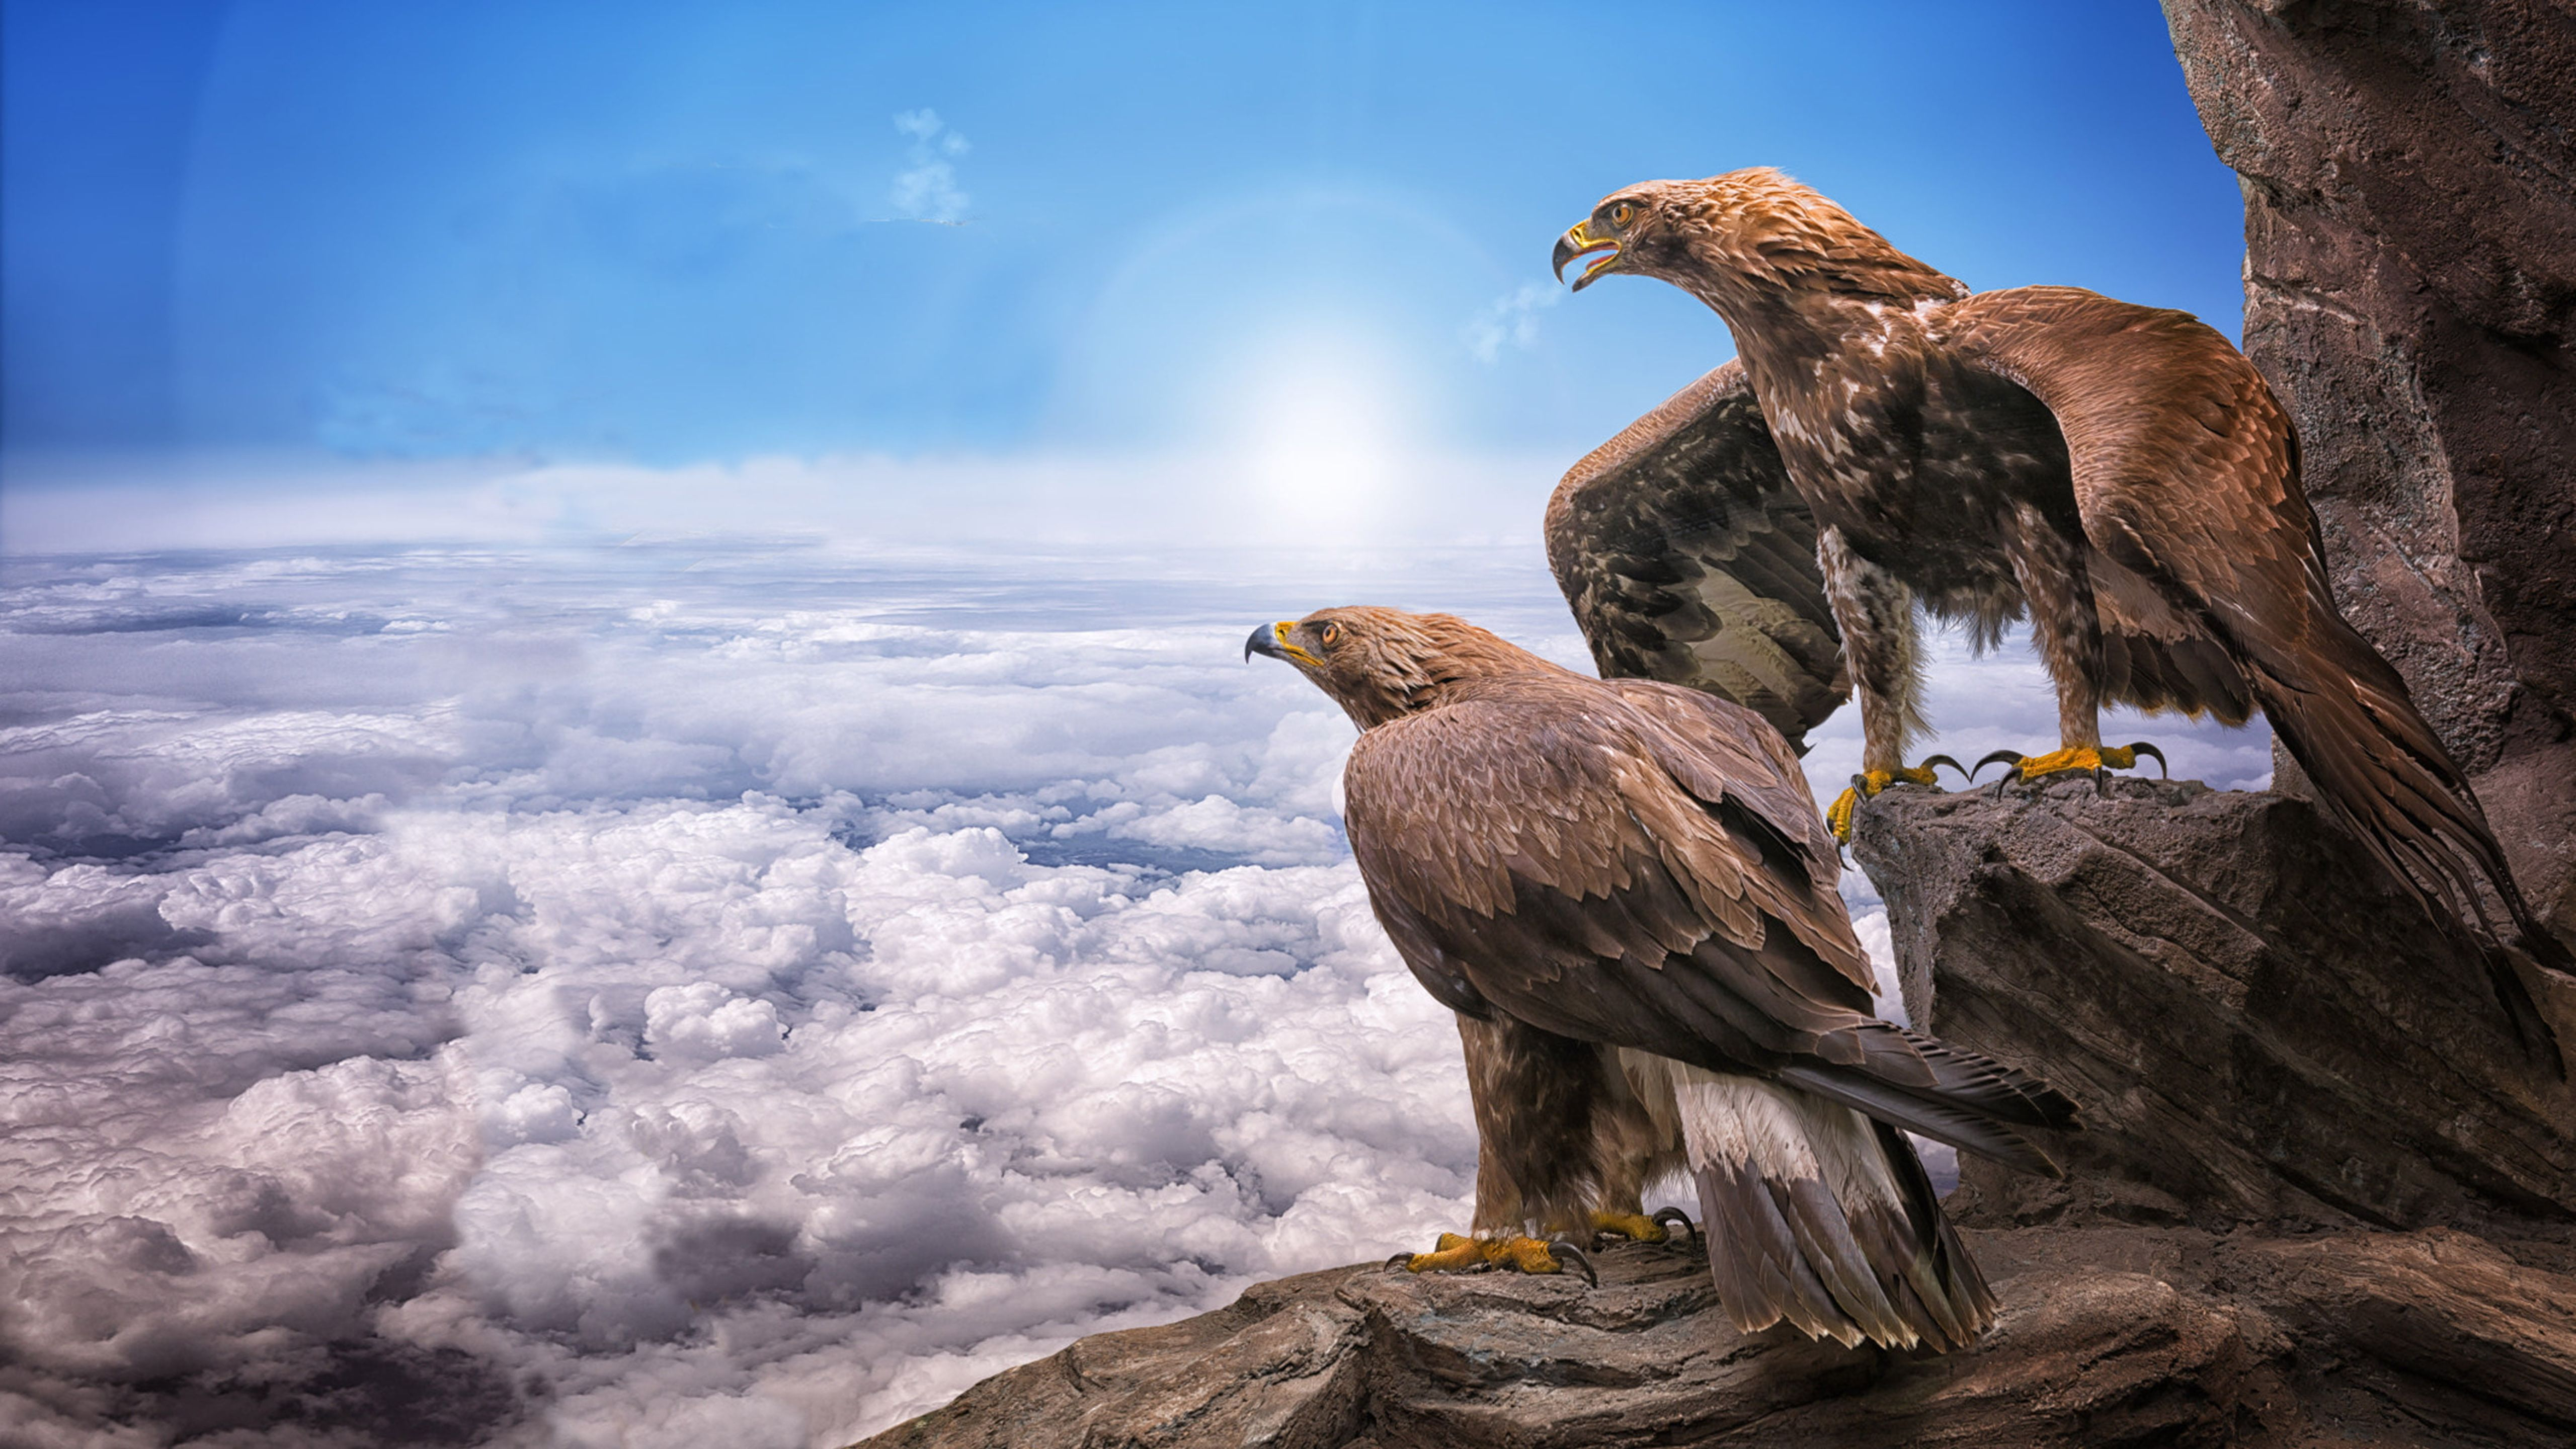 5120x2880px Free Download Hd Wallpaper Eagles Birds Prey Masters At Heights Sky Clouds Roc Sun Animals Hd Wallpaper Desktop Photo Wallpaper Sky And Clouds